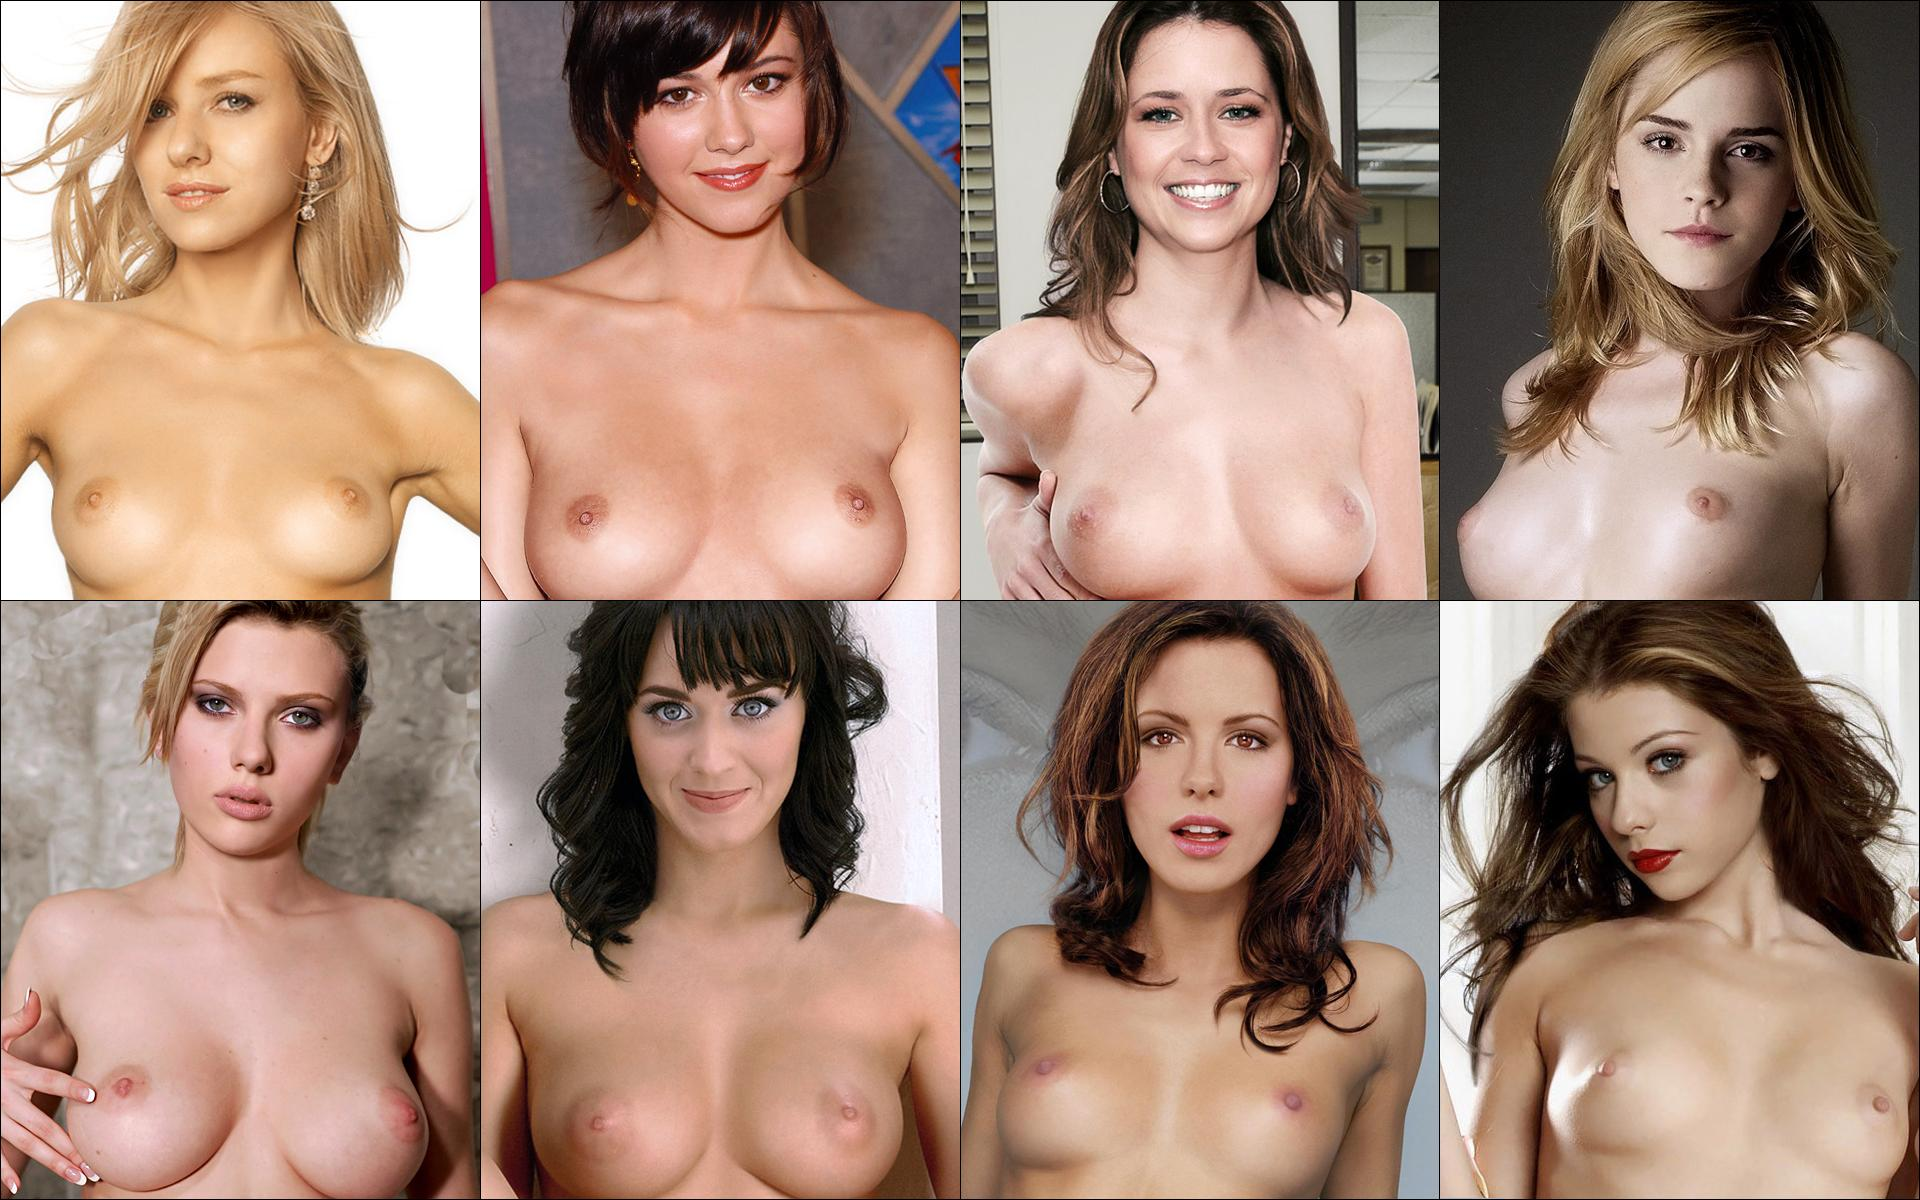 nude celebrity wallpapers